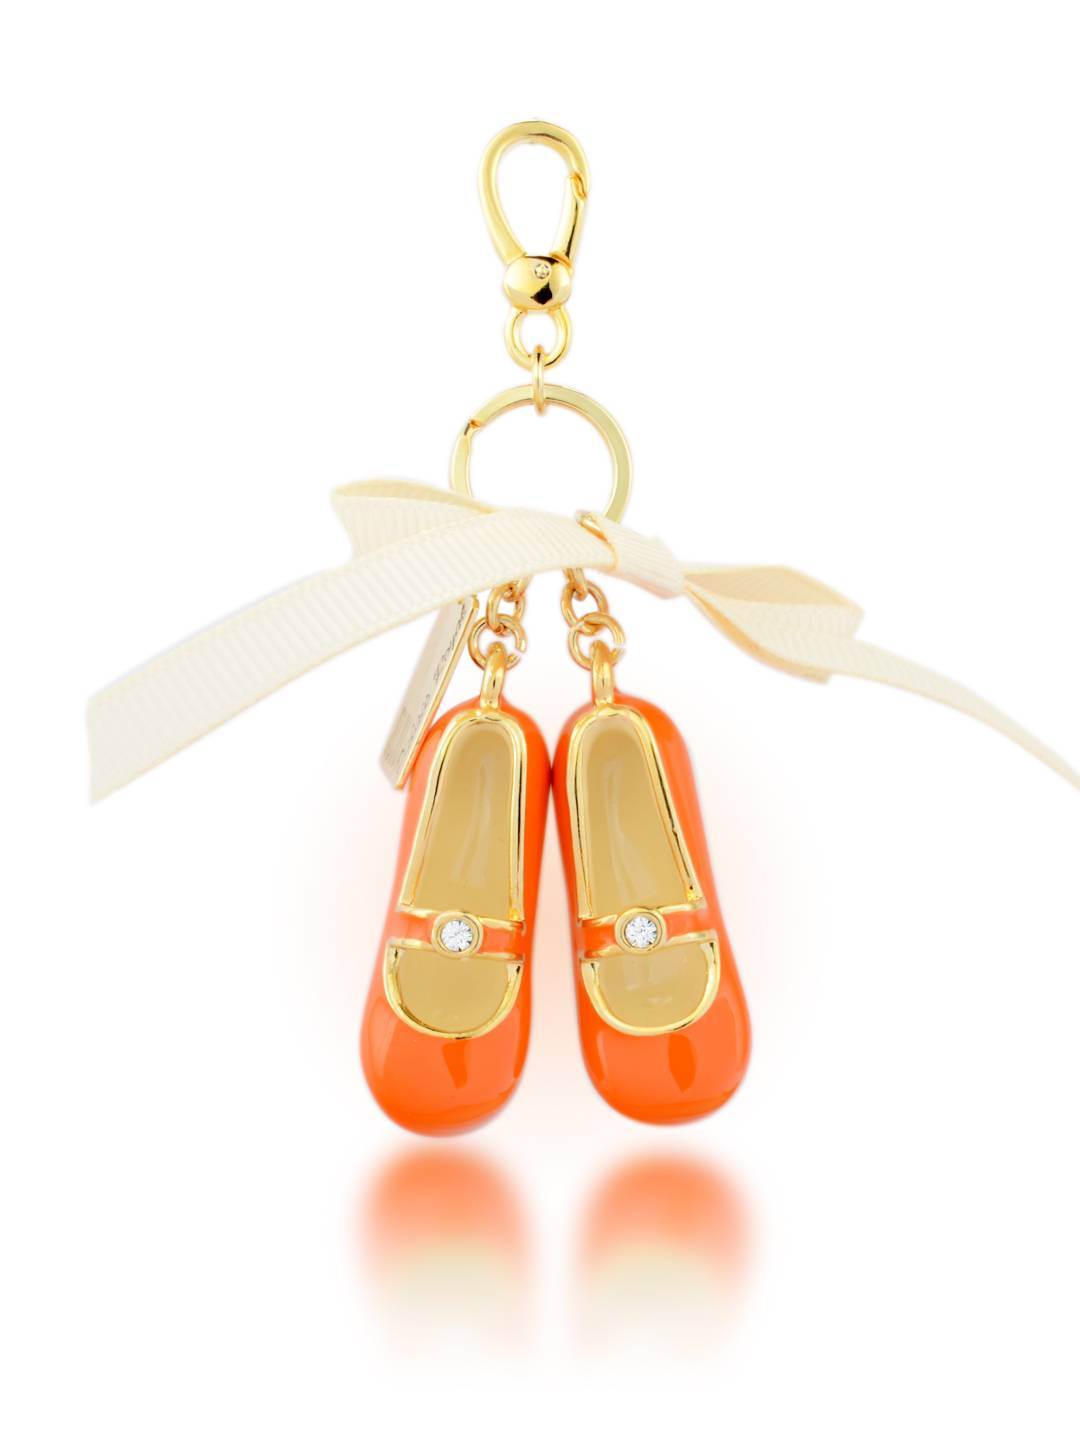 Baby shoes keychain-24K gold plating metal keychain with enamelBaby shoes keychain-24K gold plating